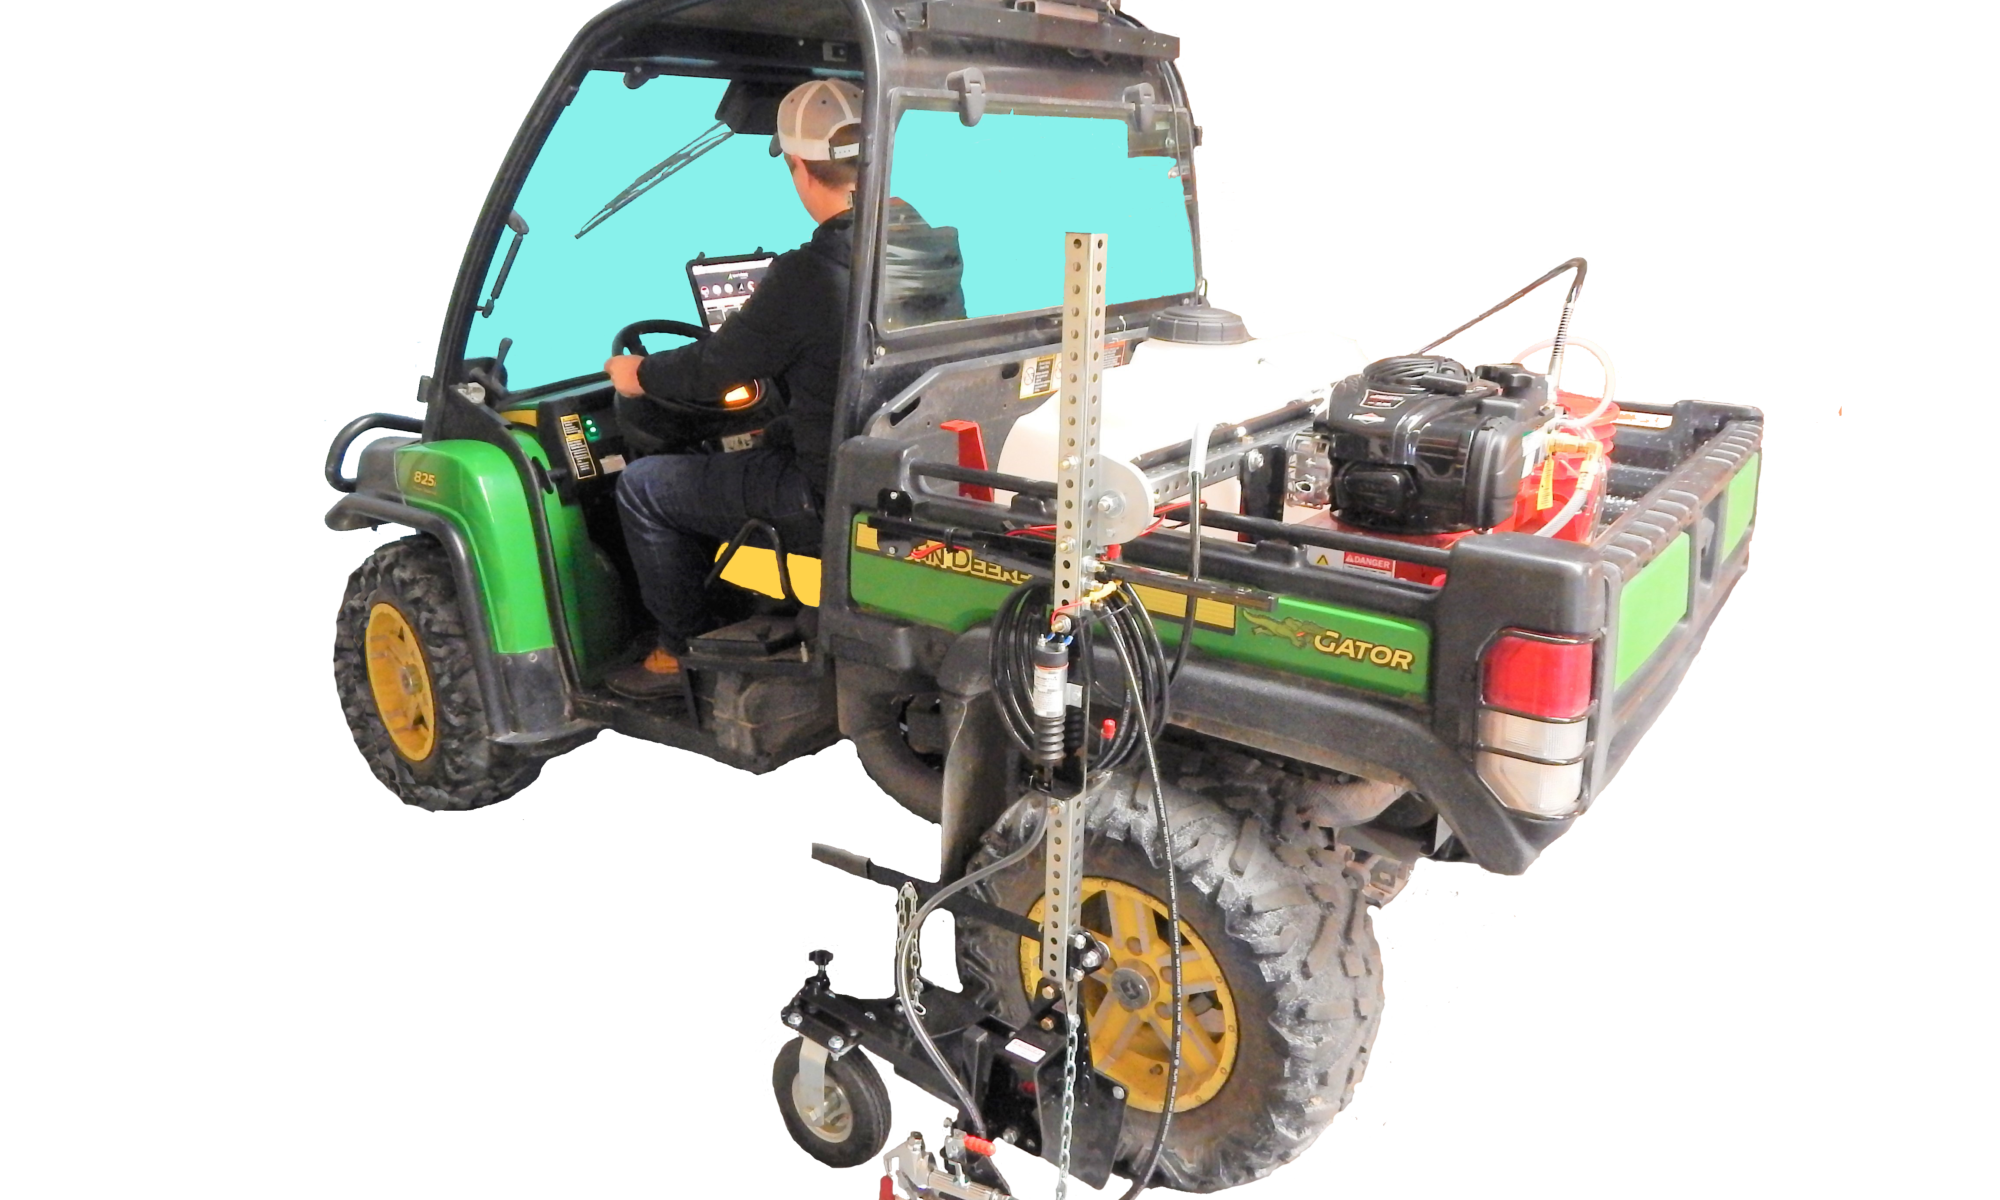 """This robust painting system has features unmatched by Robots or other GPS striping machines system including: <strong>Fits on most popular UTVs – </strong>Two seater UTV with open wagon bed including John Deere, Kabota, Ranger and others. <strong>Fast – </strong>Paint at speeds up to 9 mph (Robot stripers paint at speeds of about 2 mph and manual walk behind and riding stripers speeds range from 2-4 mph). <strong>Fewer Stops –</strong> The total paint capacity is thirty gallons. The25 gallon main paint tank lets you stripe miles of line before refilling. Alternately, use the super convenient five gallon pail option on smaller jobs such as a single field or quickly changing to a second color. <strong>Adjustable Spray System –</strong> 0-3000 psi paint pump allow you to select the perfect pressure to apply your paint. Plus, it lets you dial in the spray so you stripe """"just the turf"""" without wasting paint, injecting the soil, or disturbing the rubber filling. <strong>Reduce Paint Budget –</strong> No expensive, exclusive, special paint required. Works with any brand of field marking paint. Thick paint, thinned paint, temporary paint. <strong>Consistent High Quality Line – </strong>Gun mounts close to pivot wheel improving controllability and the floating swivel caster allows it to follow ground contours while maintaining line width for more consistent lines over rough terrain. <strong>Versatile –</strong>A quick release clamp allows you to remove the spray gun to spray stencils, small curves and hard to reach areas with a 25 foot length hose. <strong>Bomb Proof, Durable Design – </strong>This machine is designed for real time hard work. Welded steel chassis, heavy duty, and commercial components. Backed by an eighteen month warranty."""